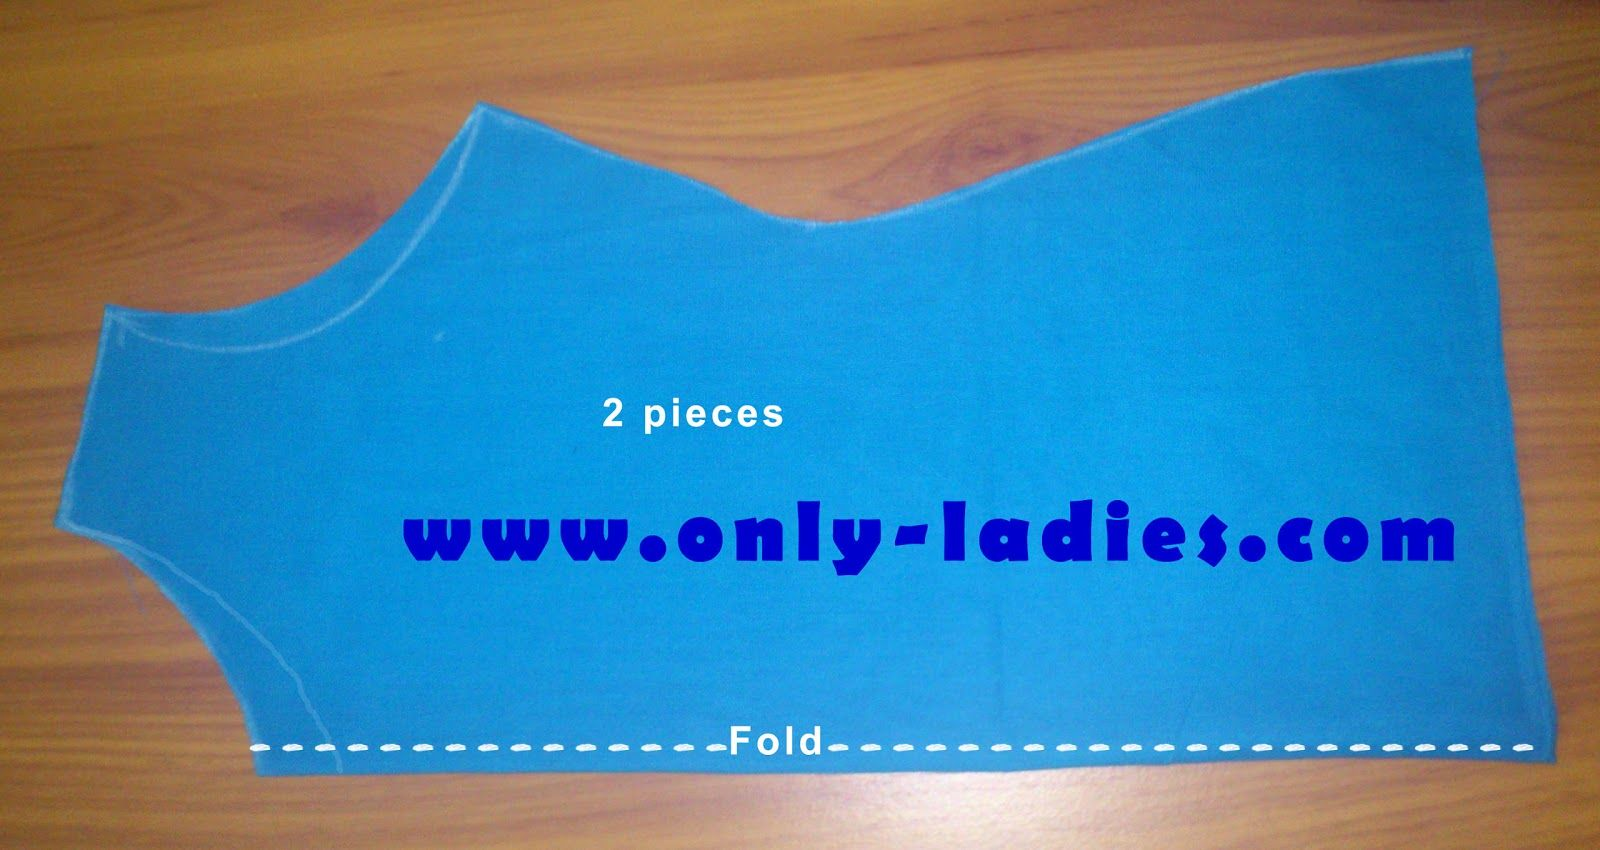 mobile.dudasite.com site only-ladies?url=http%3A%2F%2Fwww.only-ladies.com%2F2012%2F05%2Fhow-to-sewstitch-salwar-kameez-step-by.html%3Fm%3D1&utm_referrer=